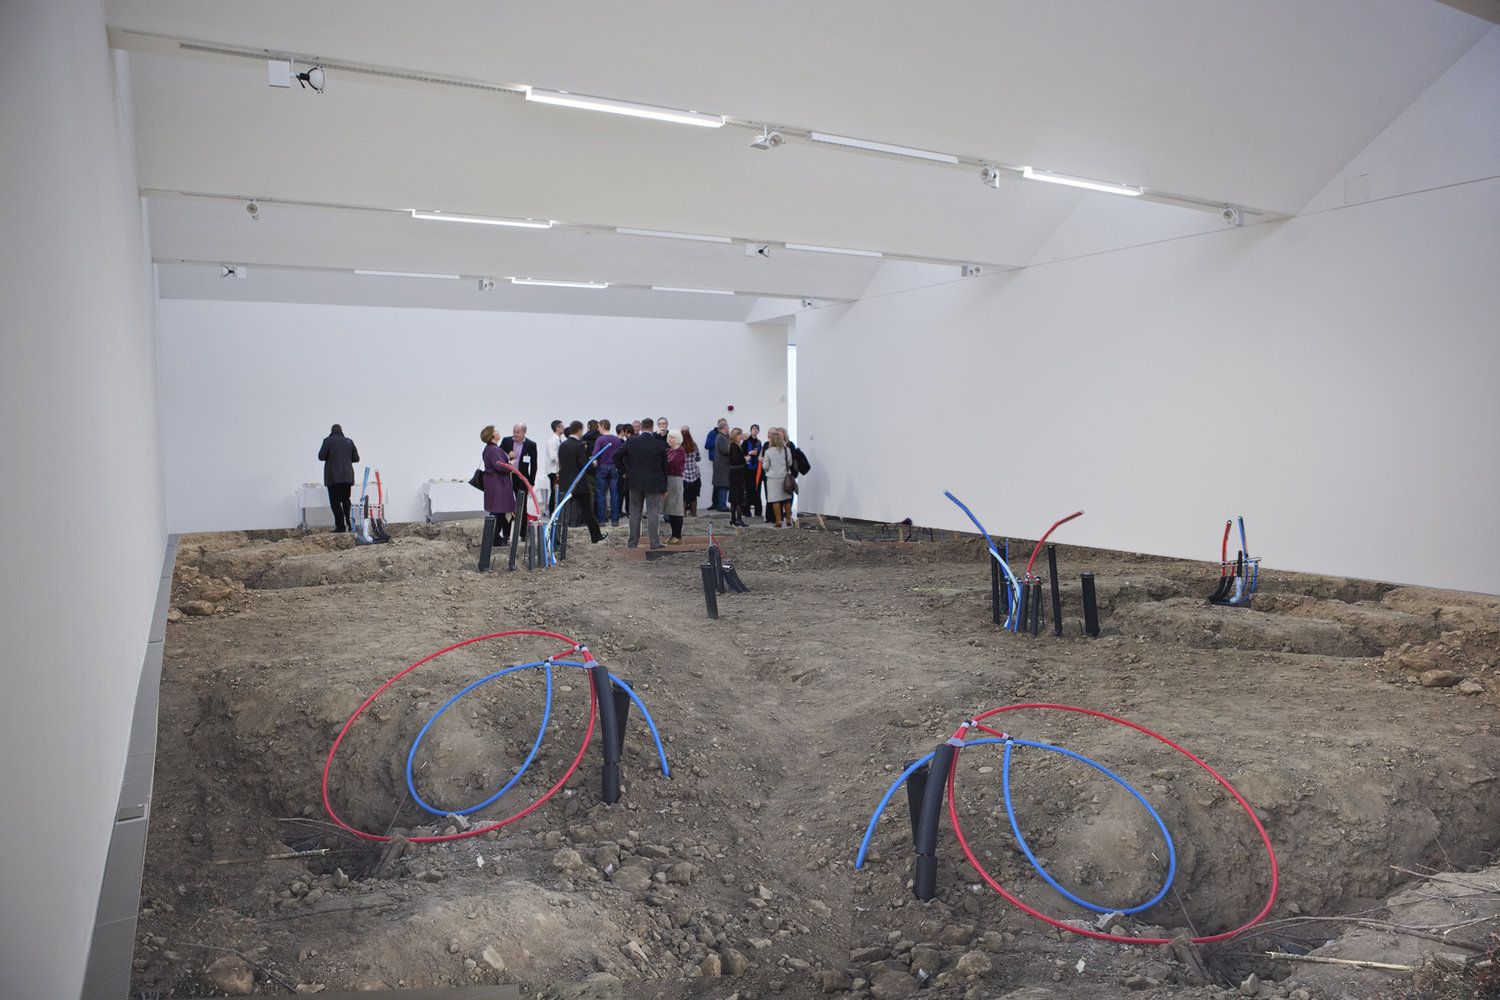 Fawn_Rogers_Exhibition_Installation_Moah.jpg